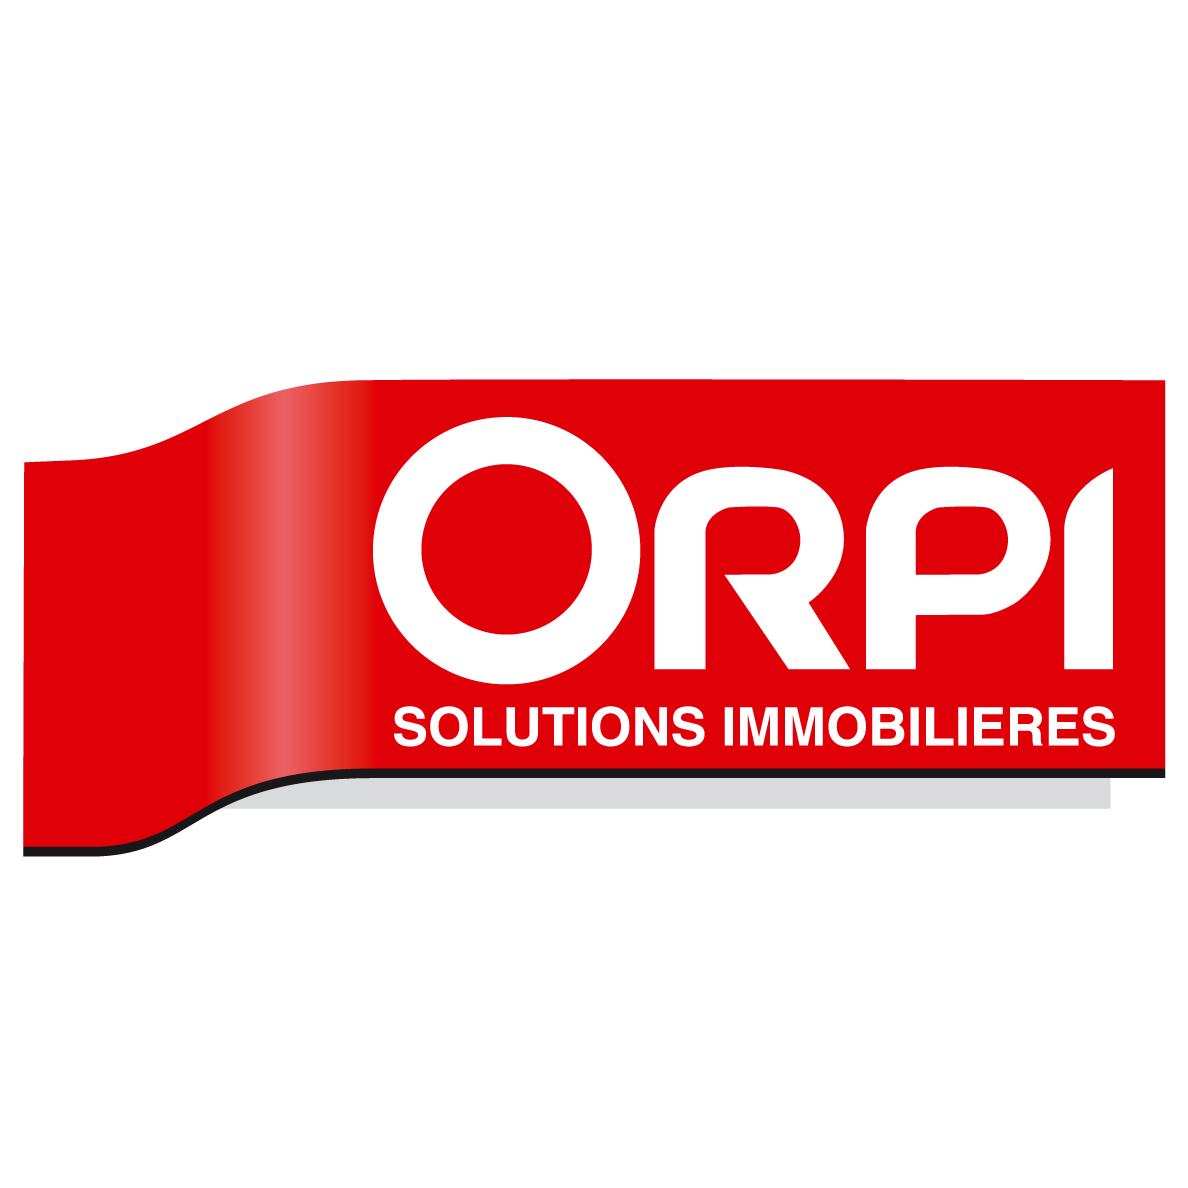 Orpi logo photographe professionnel a bordeaux for Appartement bordeaux orpi